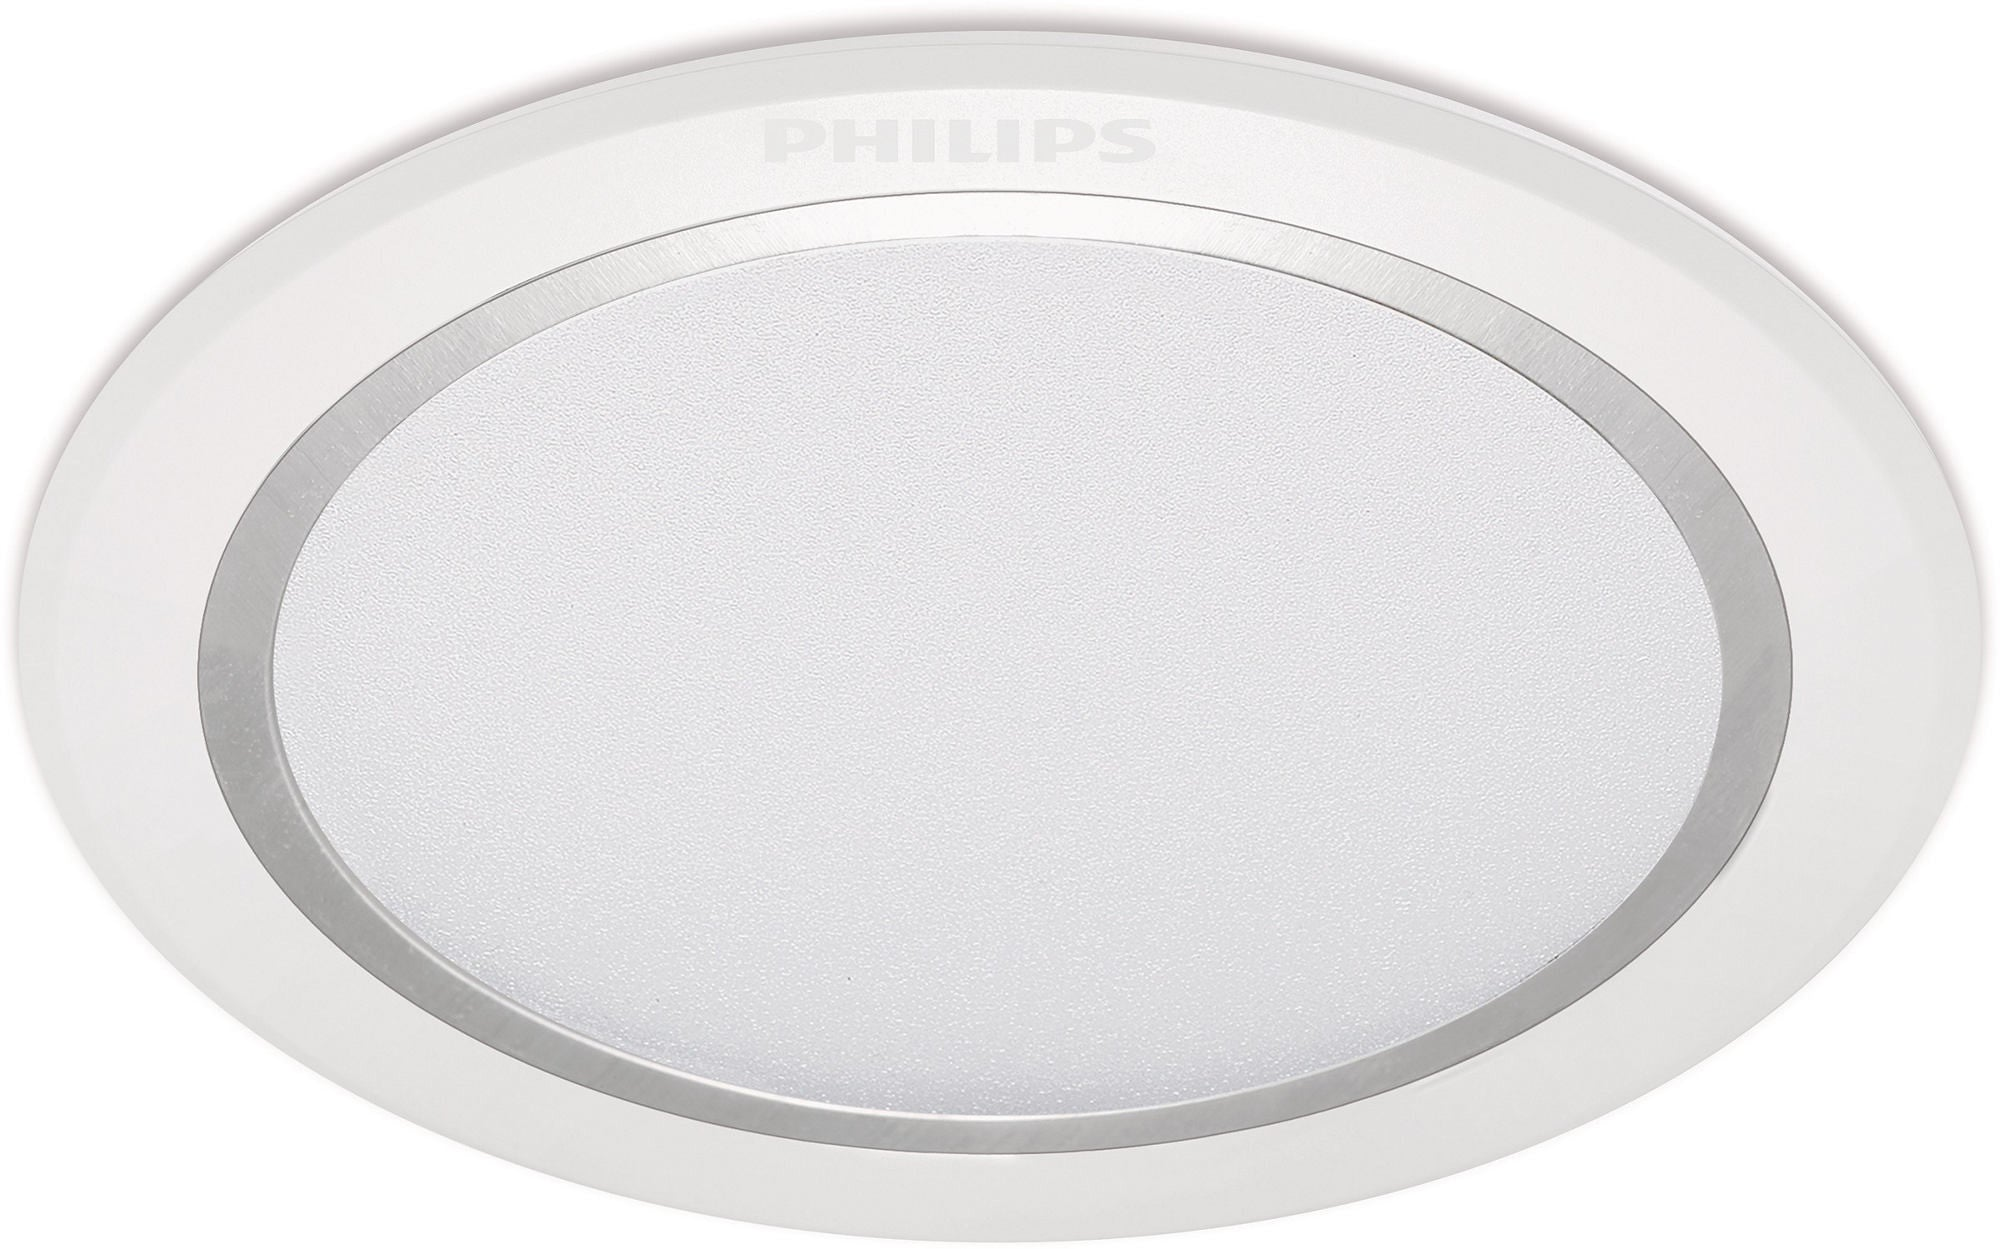 Philips LED Recessed Spot Light / Downlight (20x0.5W 2700K Warm White)